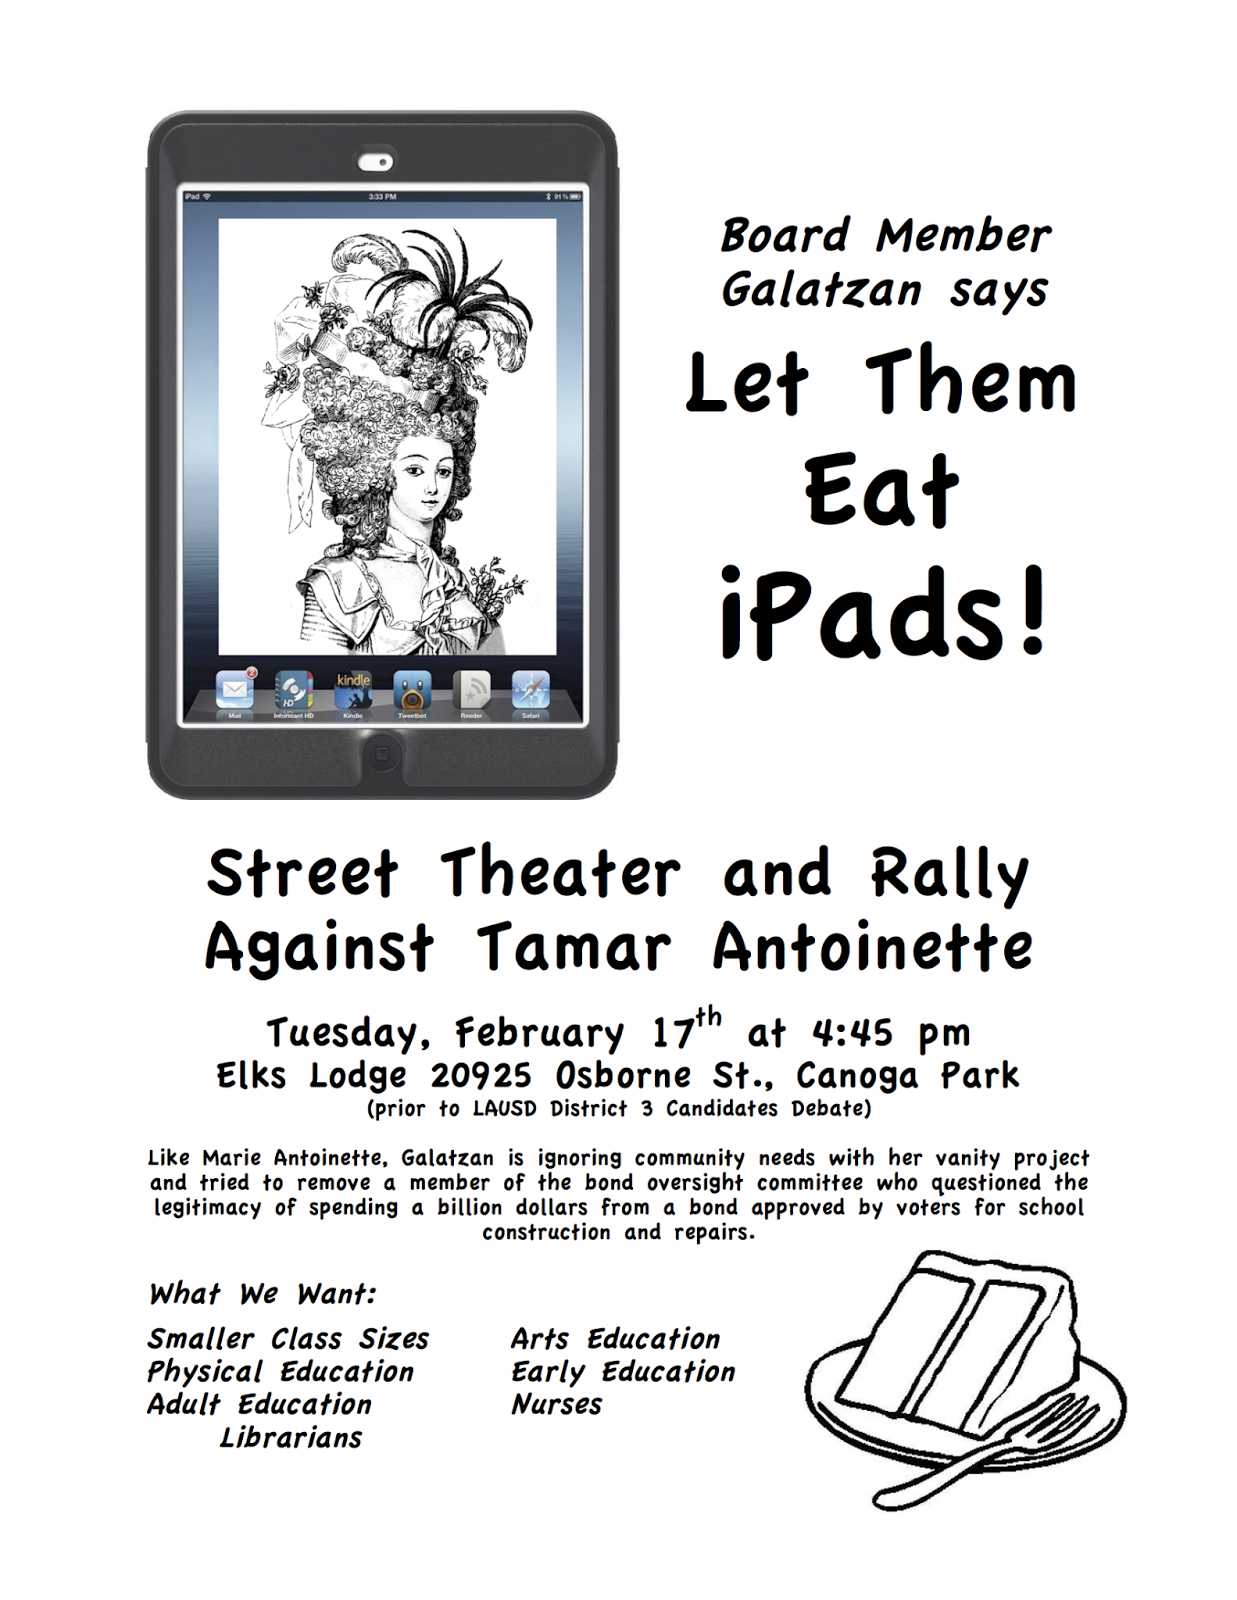 Board Member Galatzan says Let Them Eat iPads!